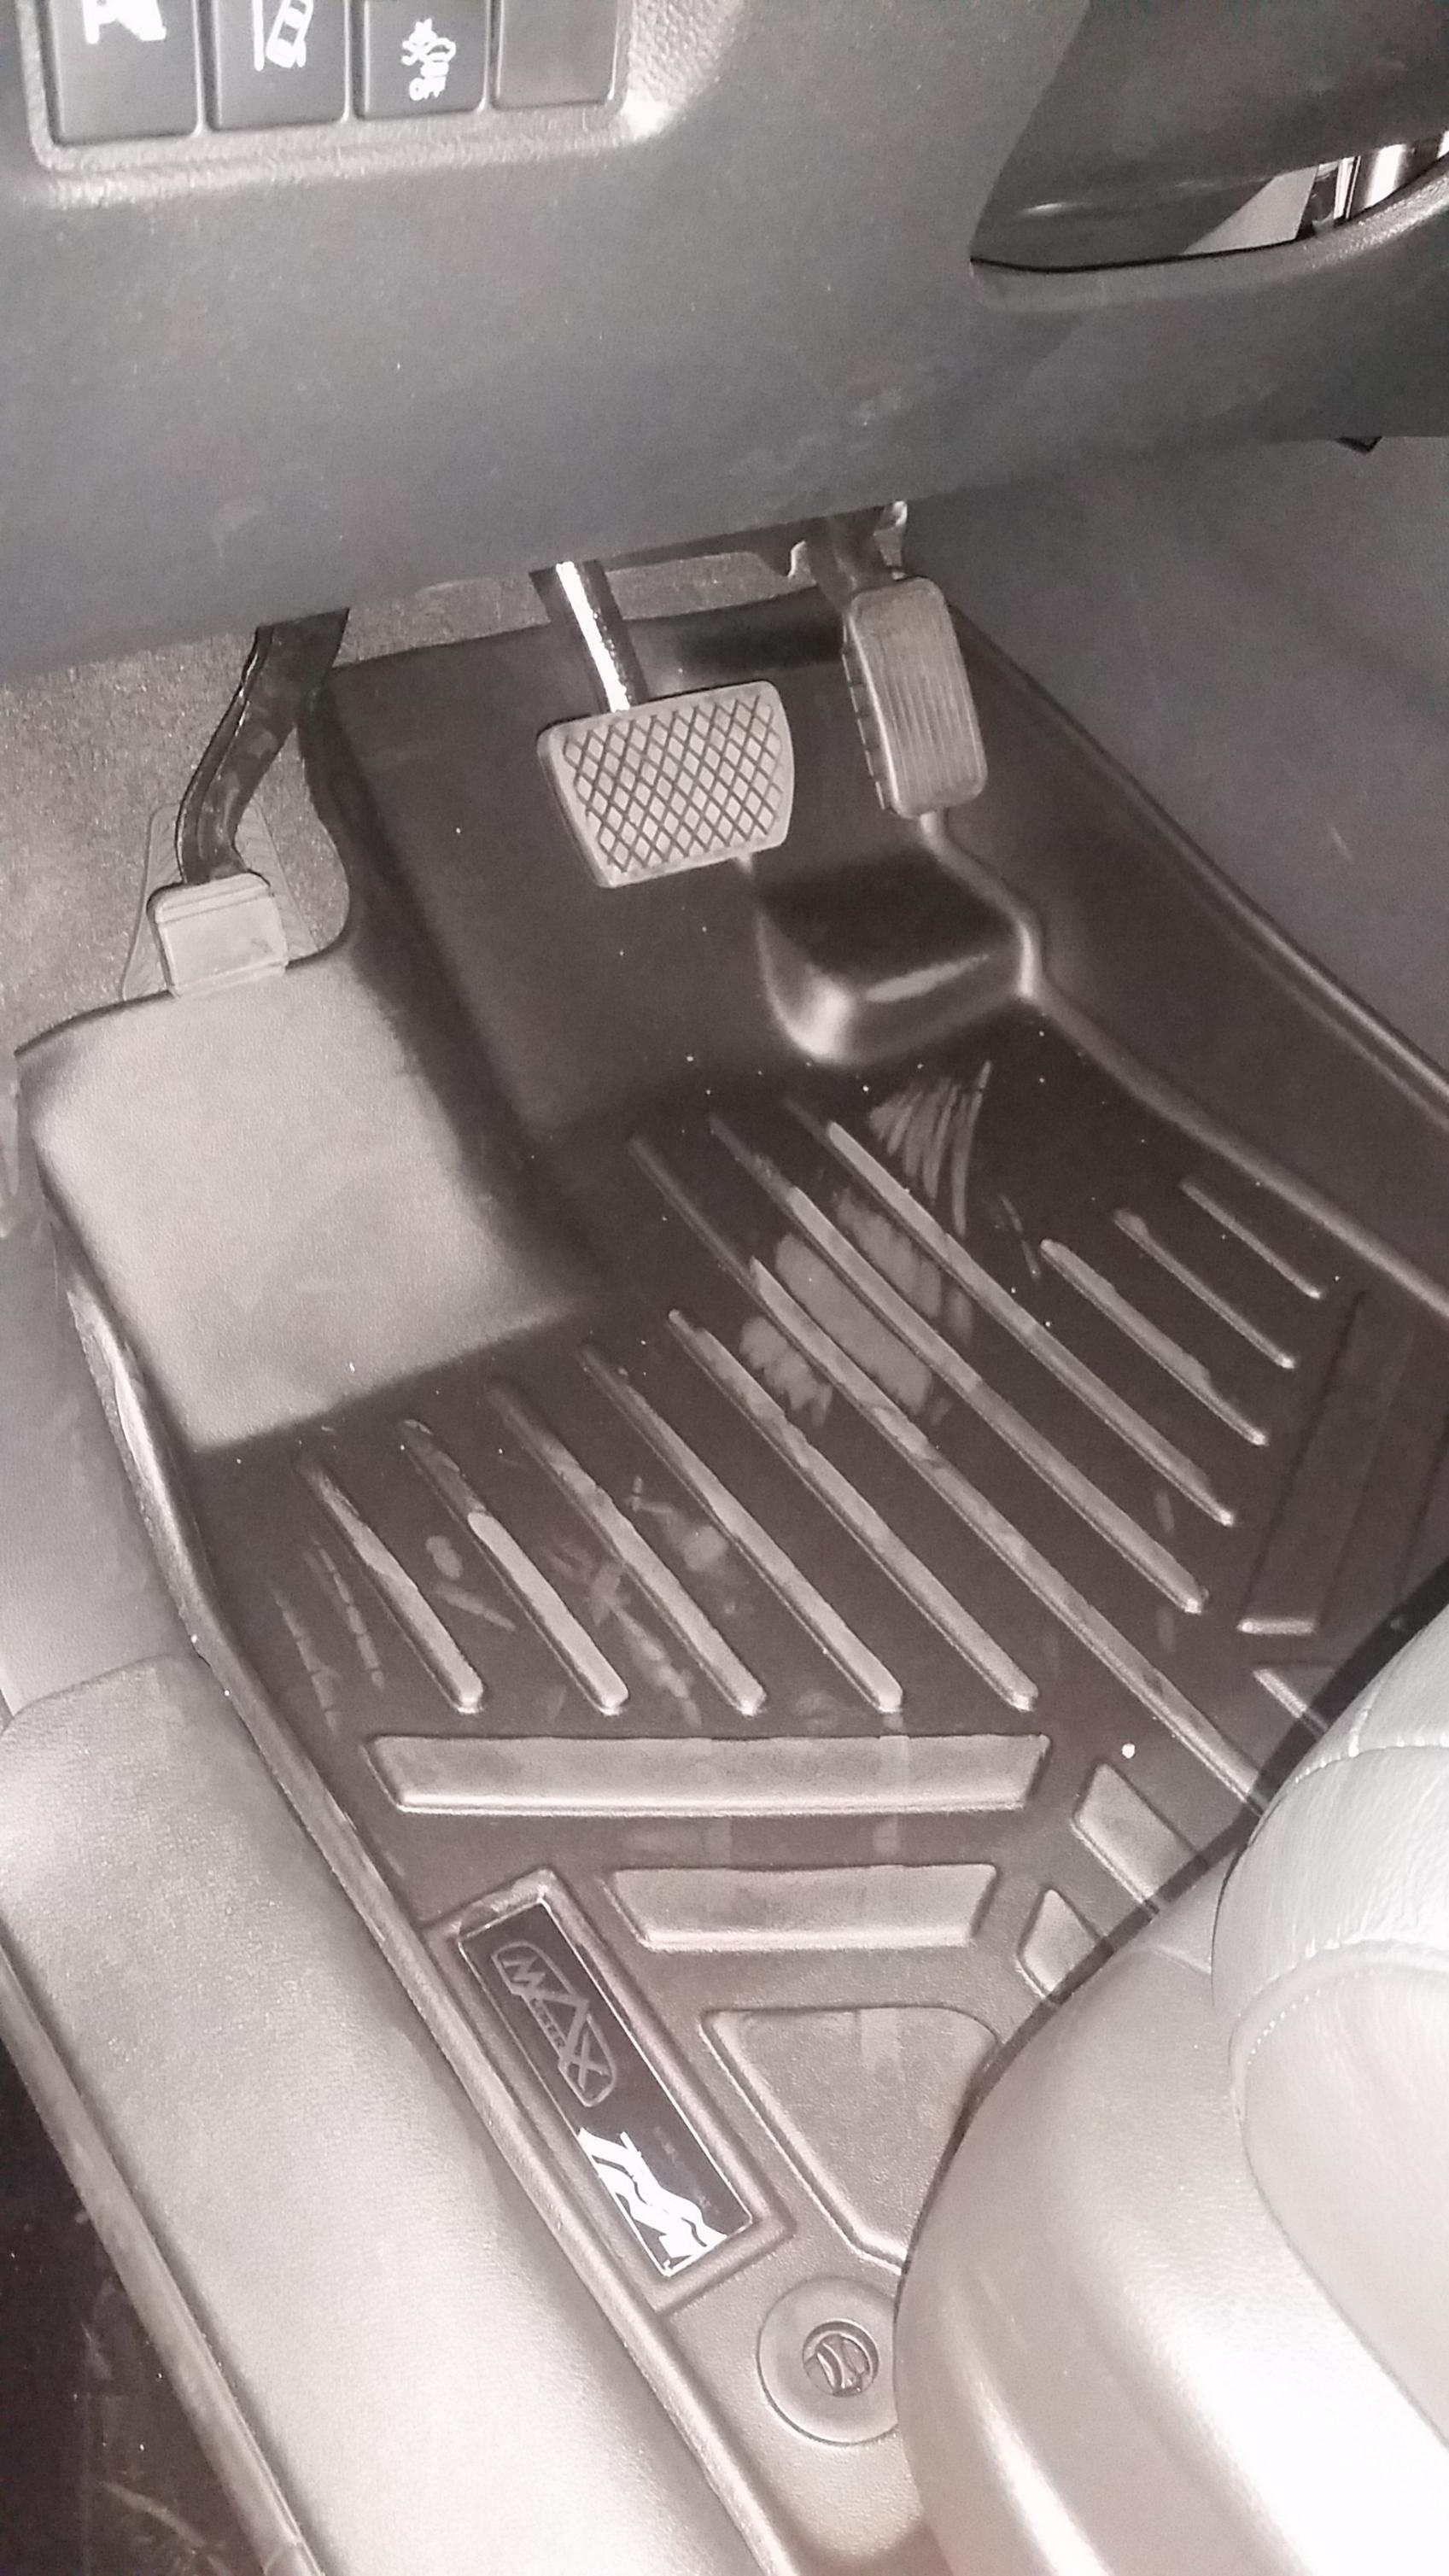 ram weathertech or u page img floor guard attachment forum appearance liners diesel